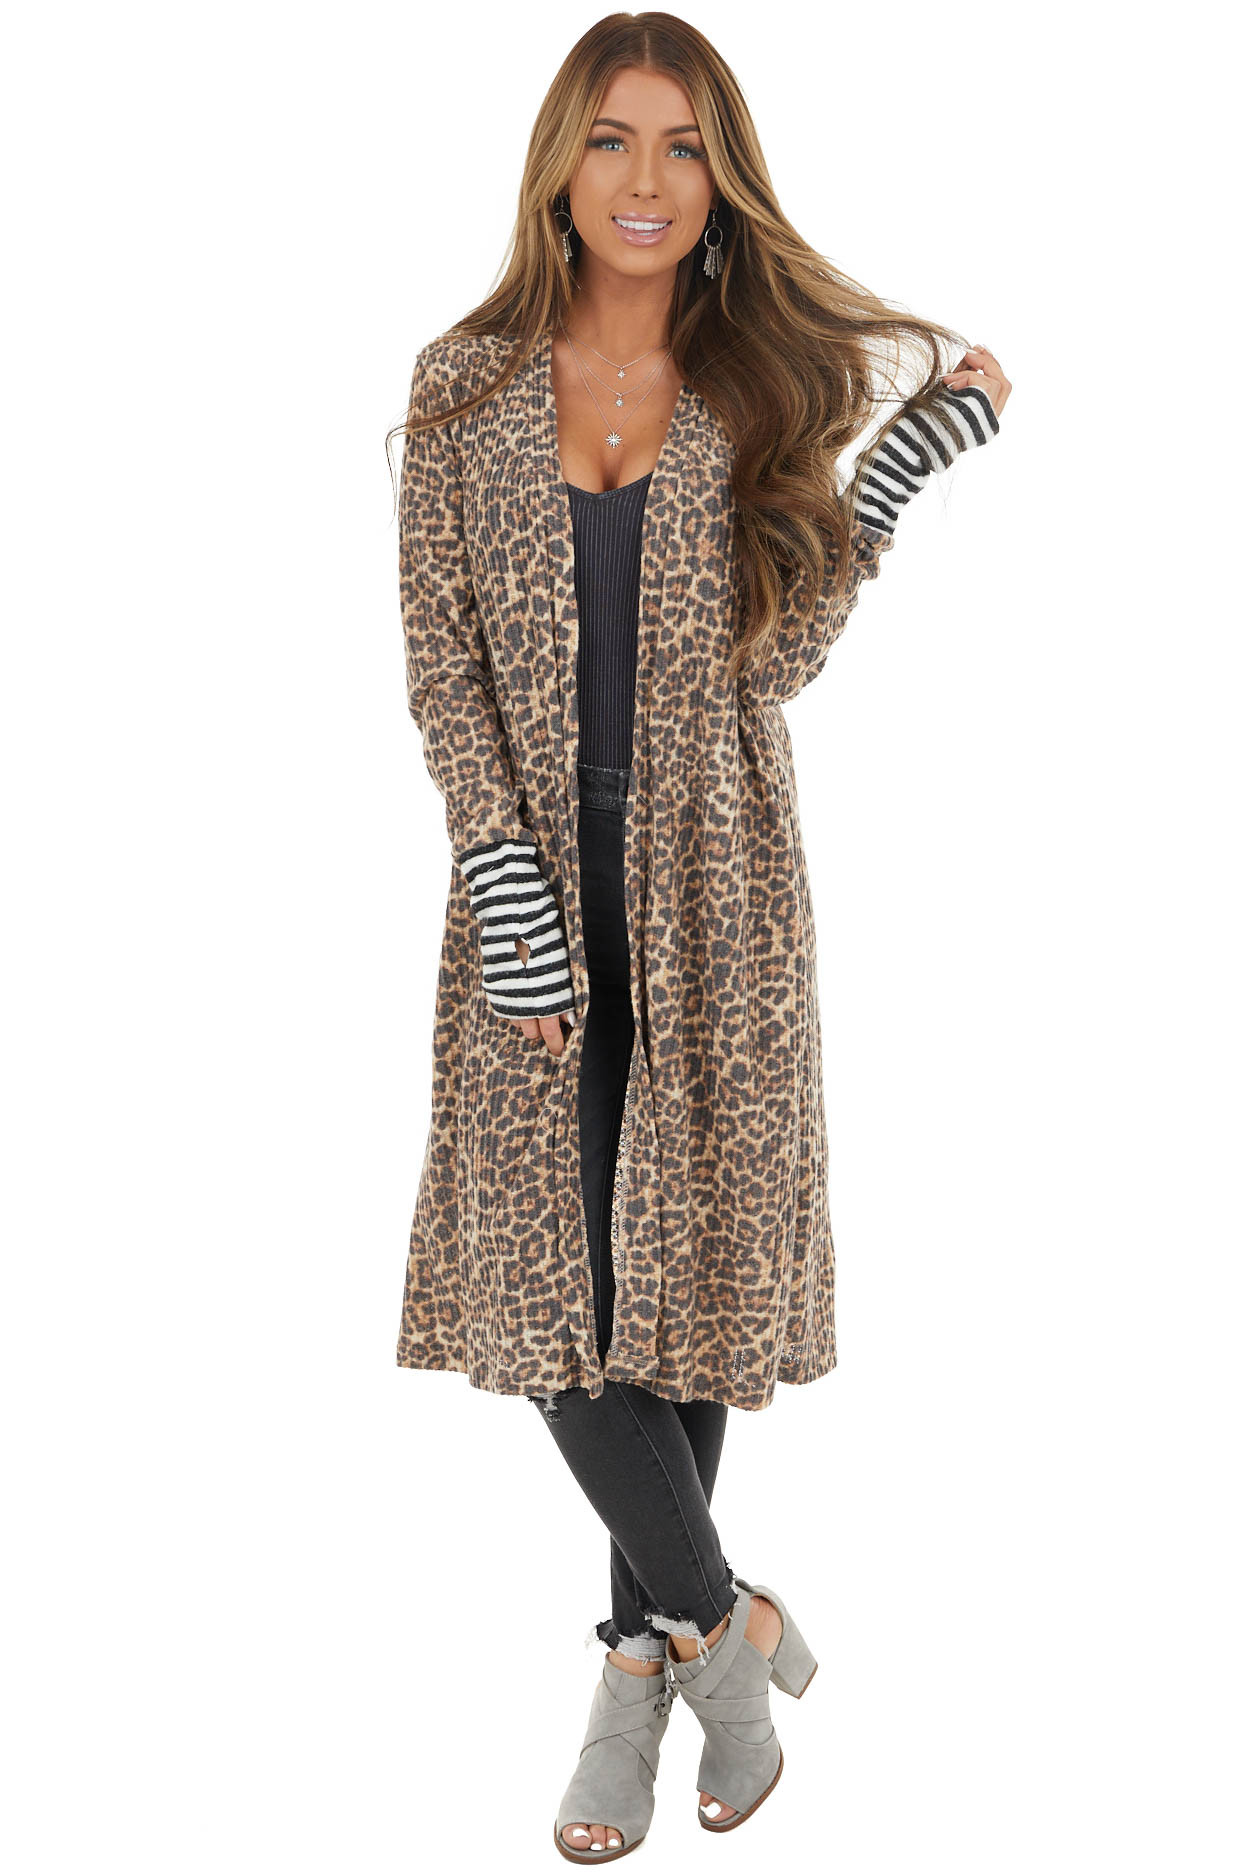 Beige Leopard Print Cardigan with Striped Contrasts